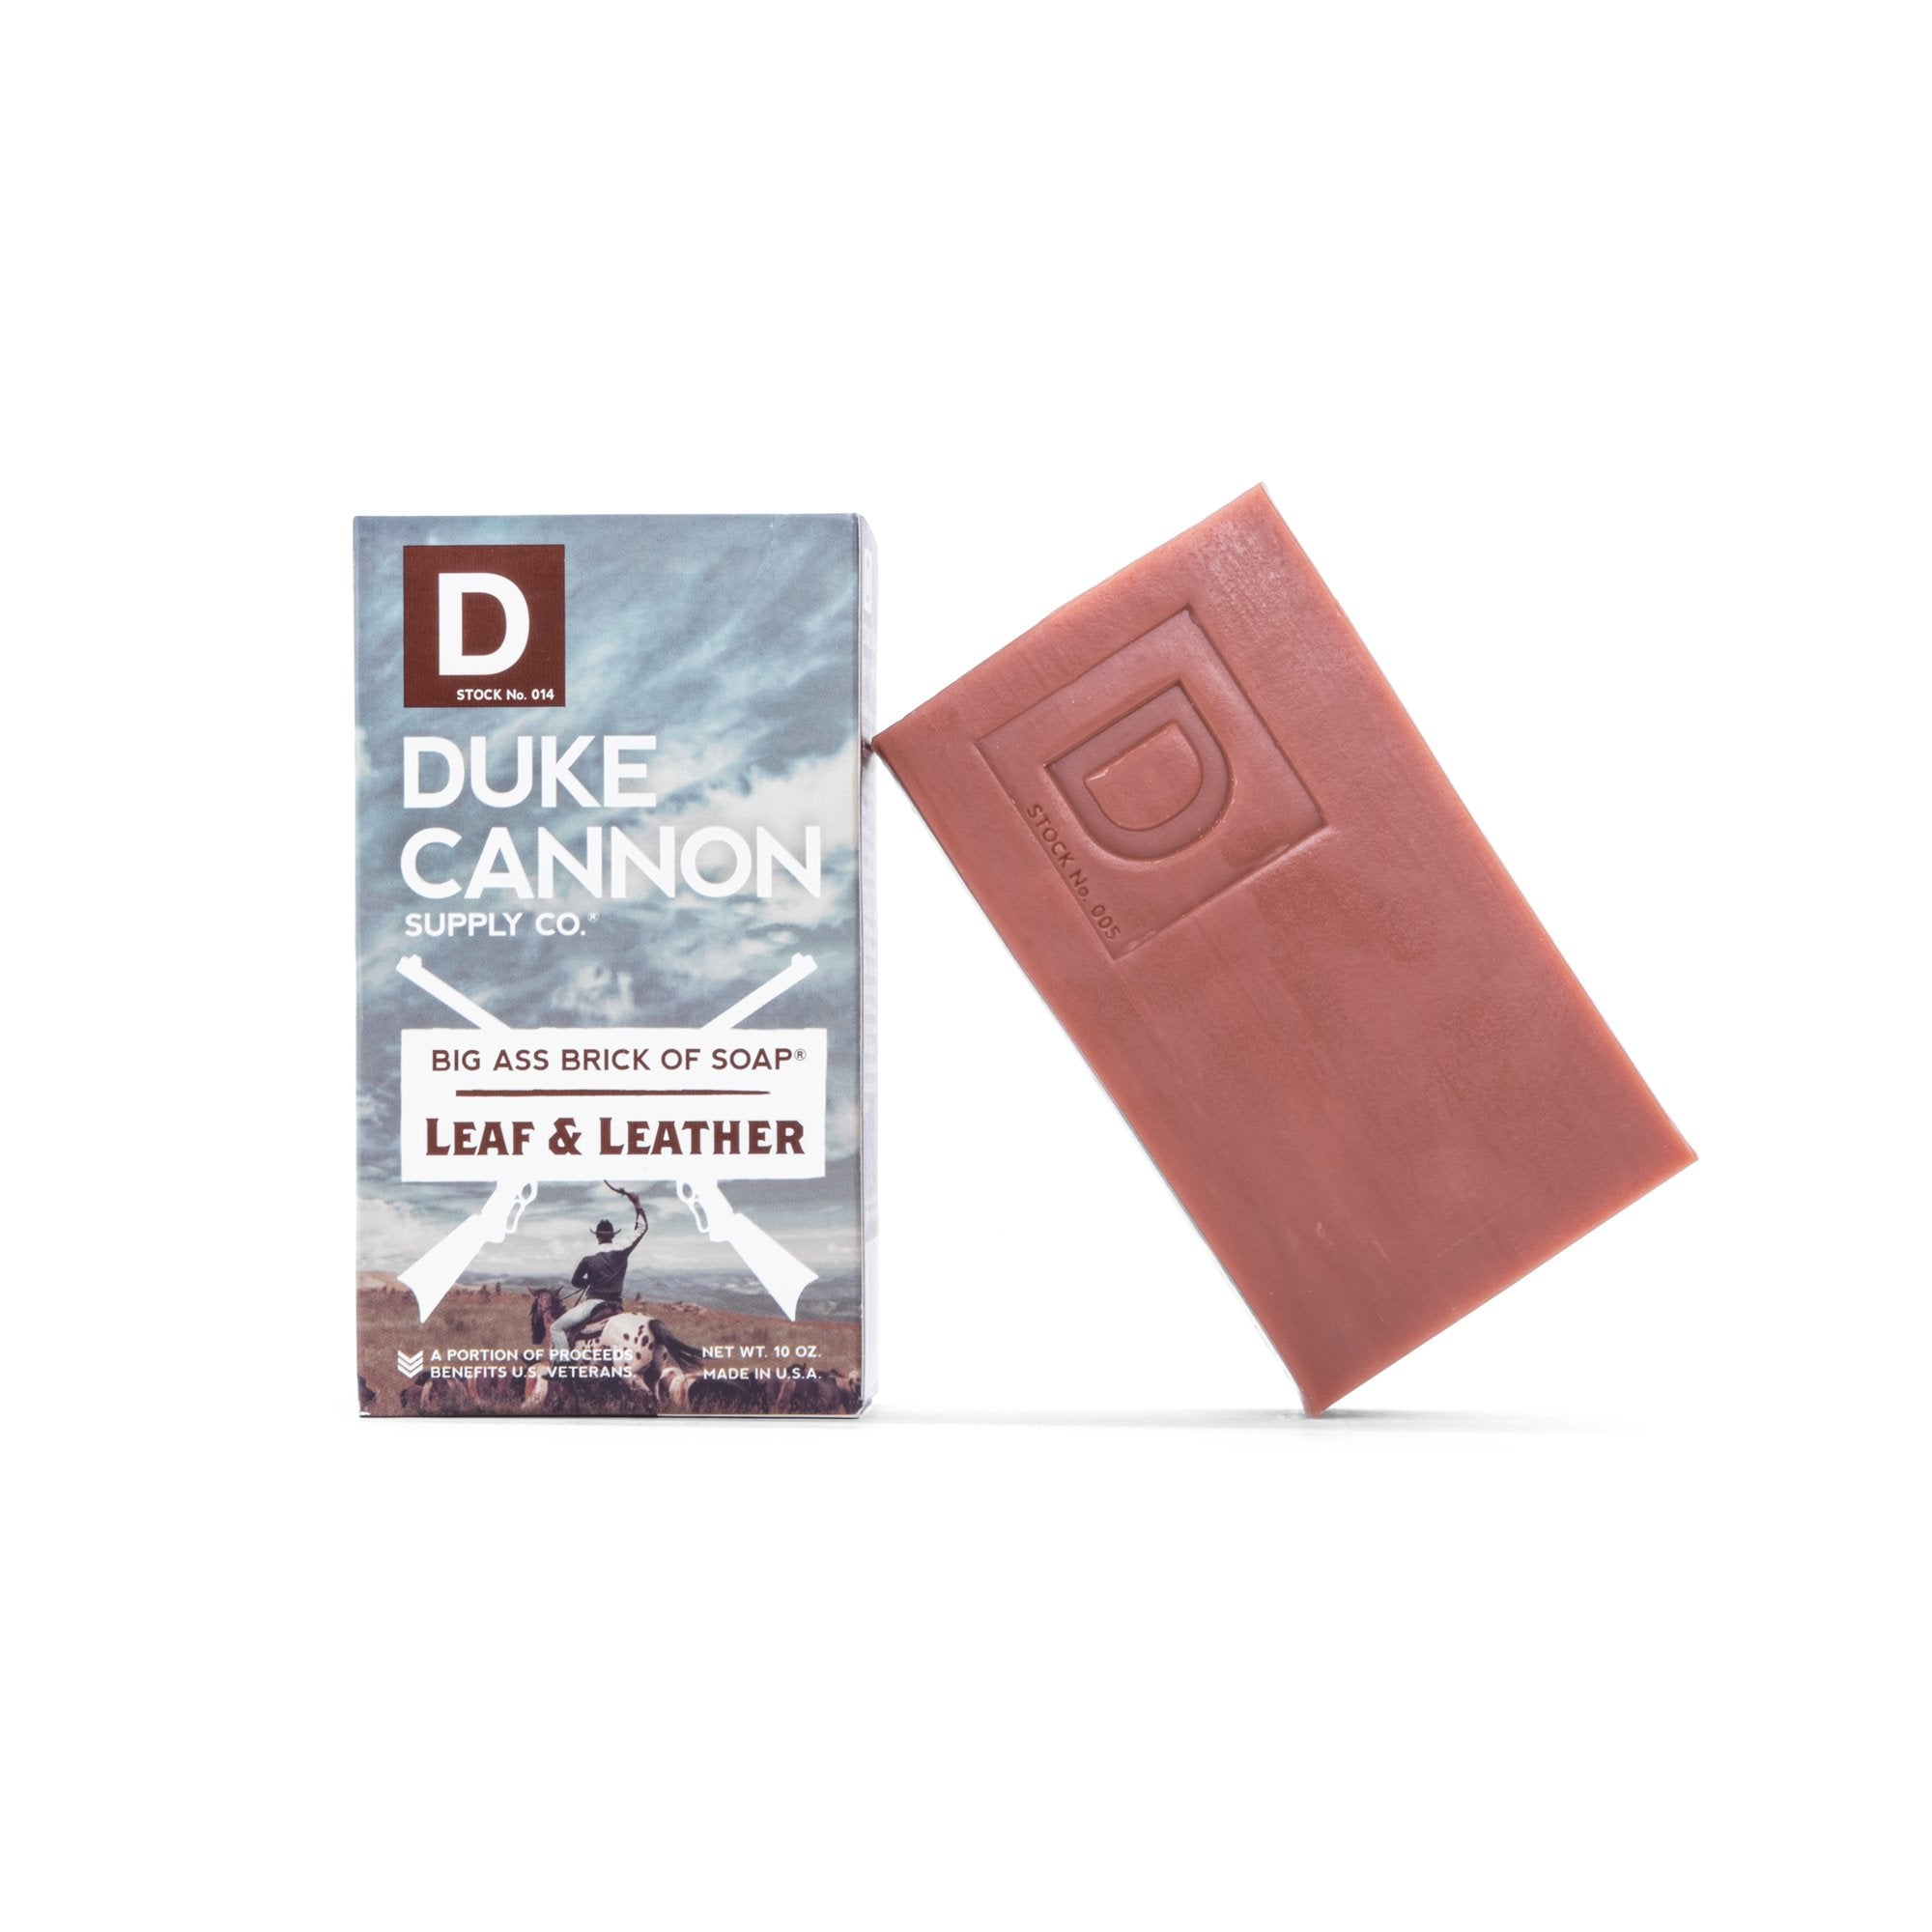 duke cannon big ass brick bar of soap fresh cut pine